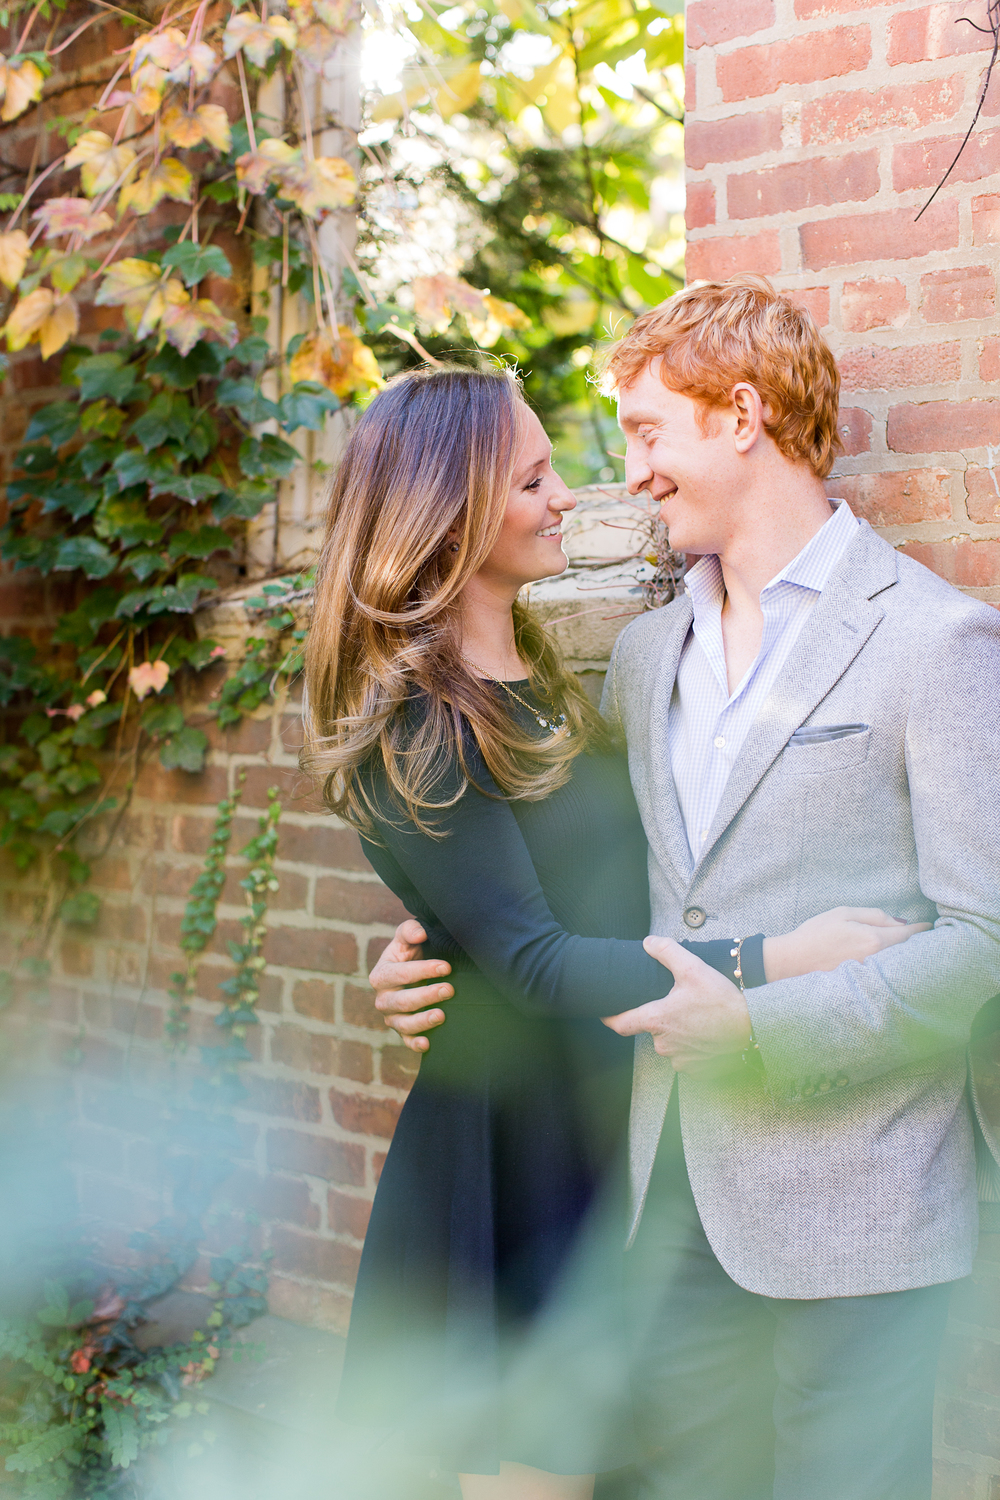 Melissa Kruse Photography - Allison + James West Village Engagement Photos-84.jpg